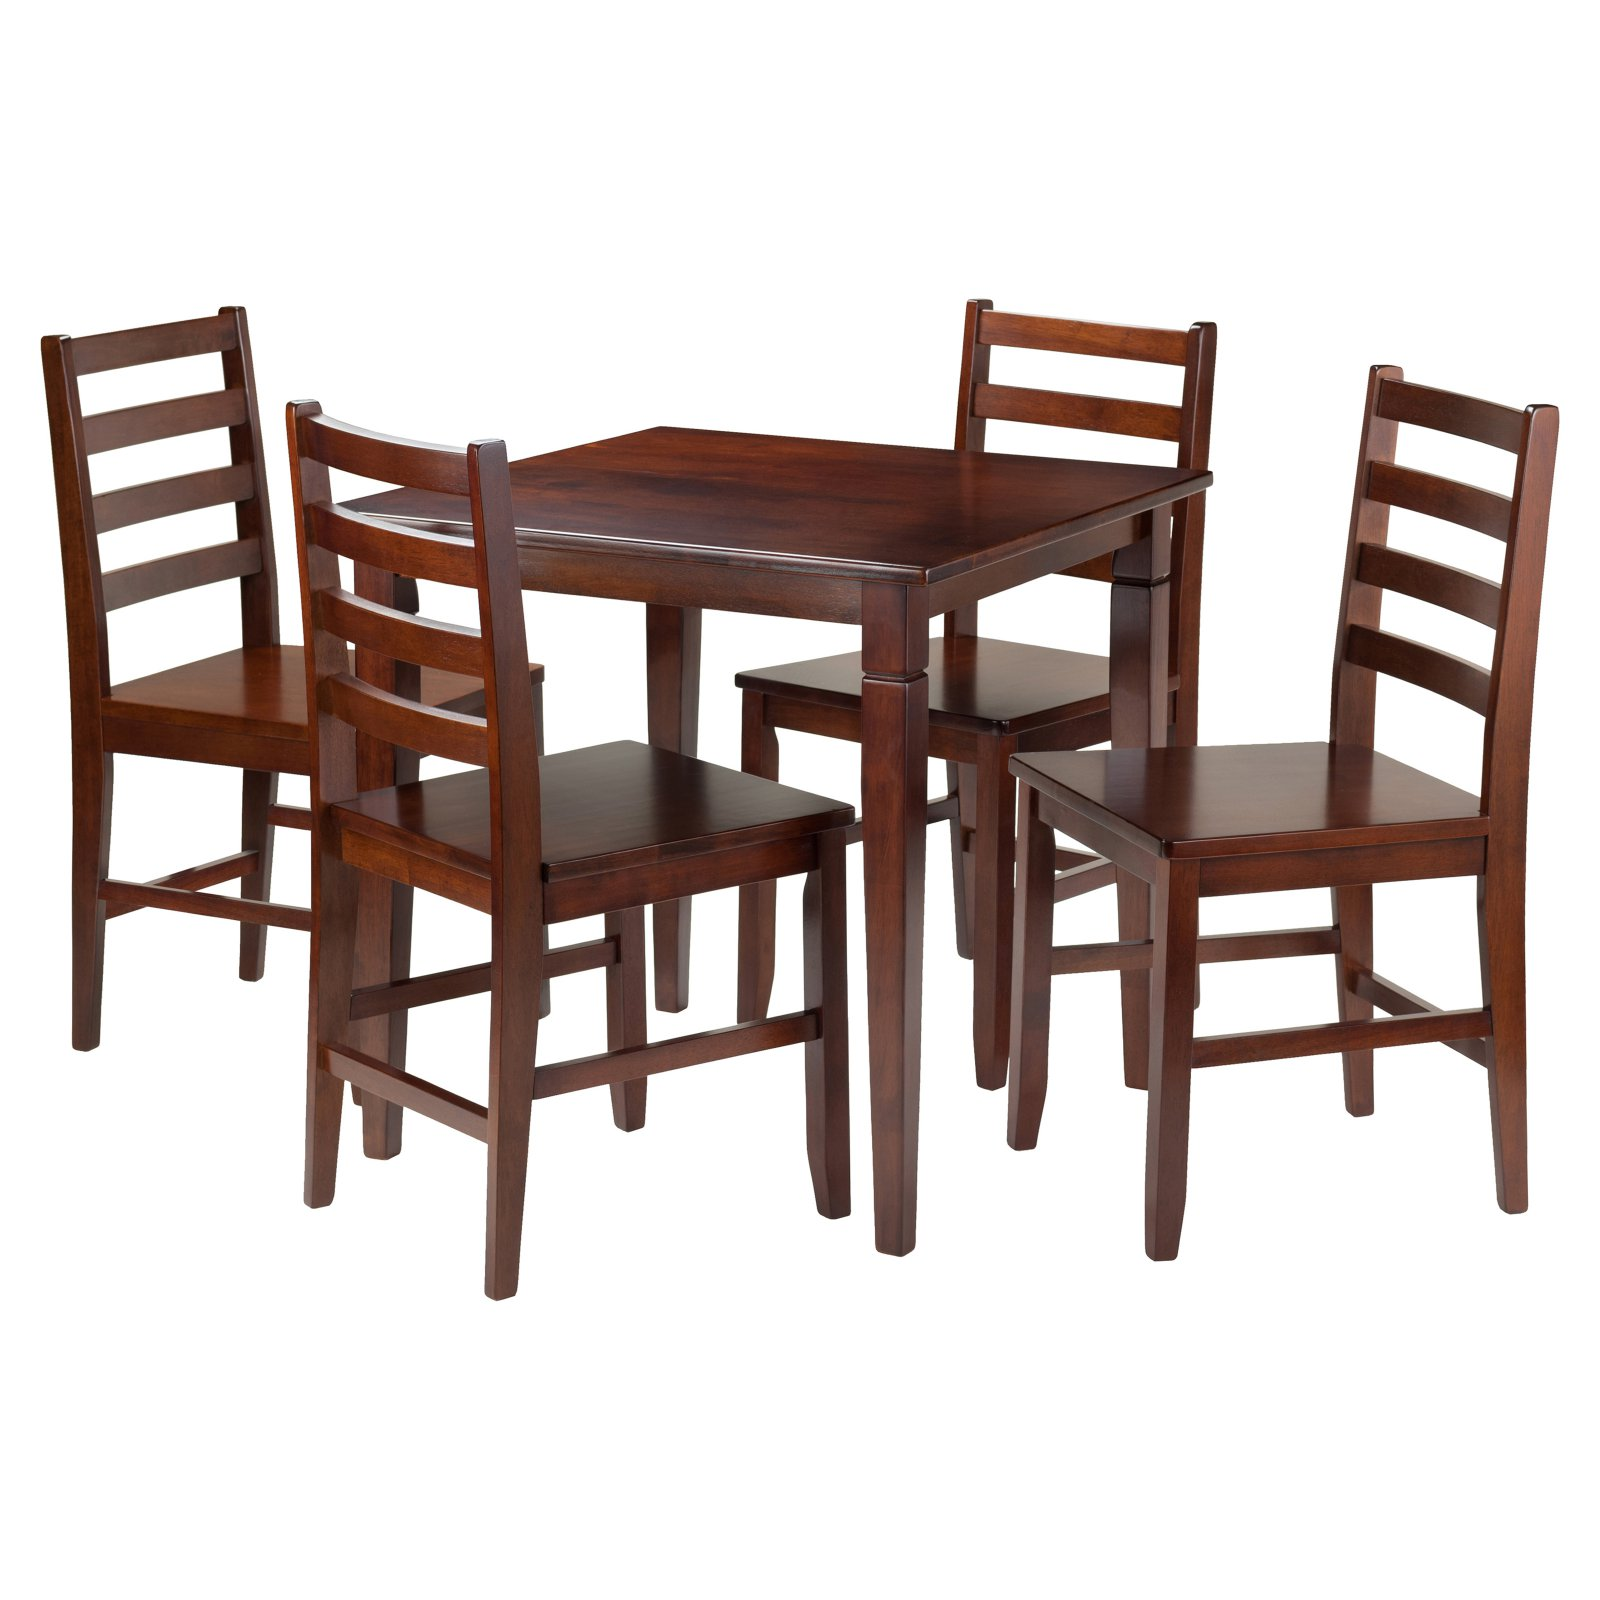 Kingsgate 5-Pc Dining Table with 4 Hamilton Ladder Back Chairs